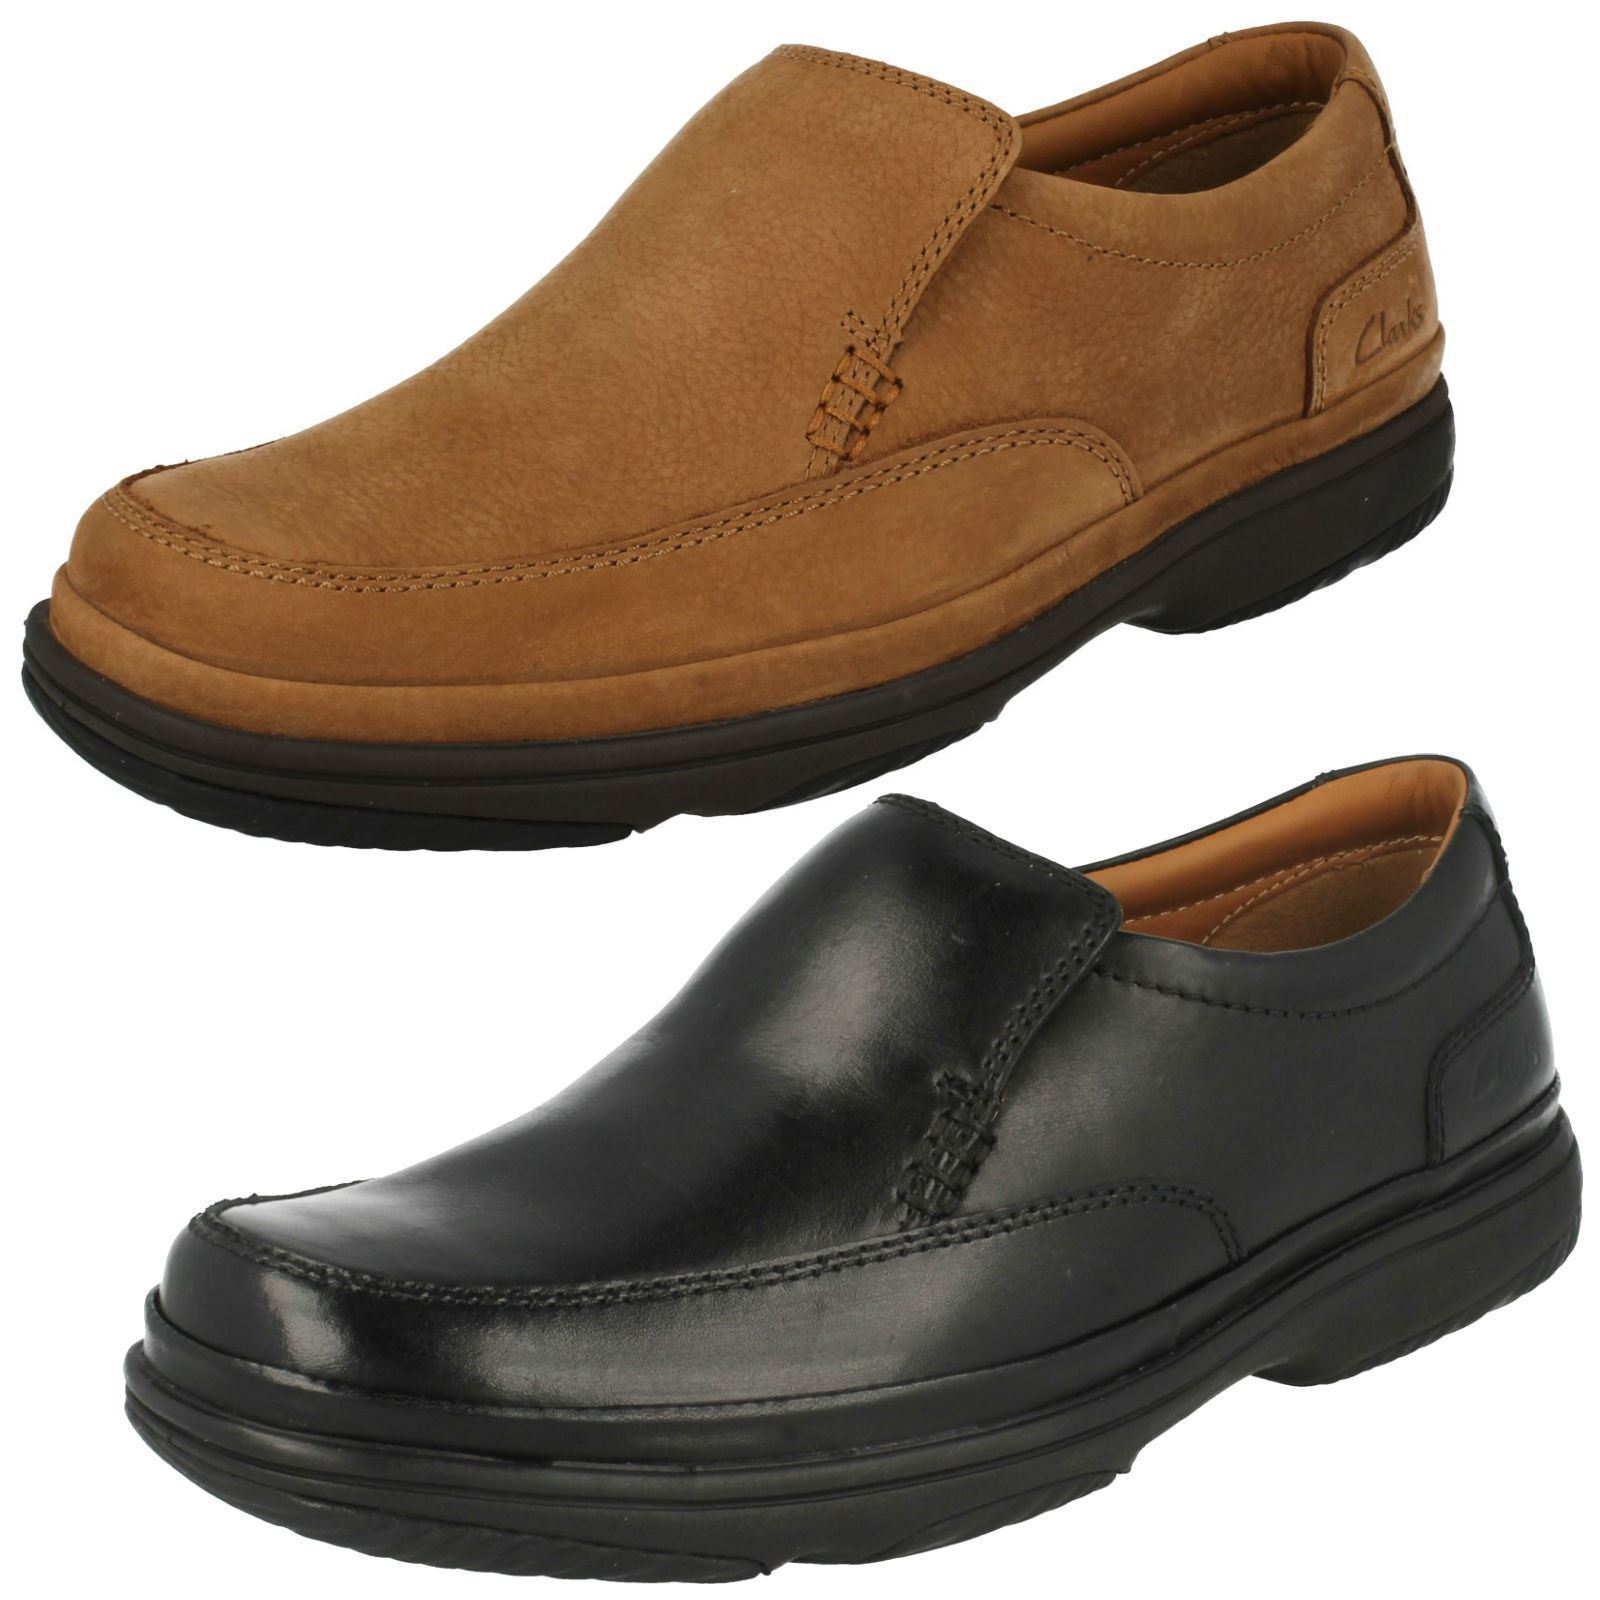 SWIFT STEP MENS CLARKS LEATHER CASUAL SMART EXTRA WIDE SLIP ON SHOES SIZE